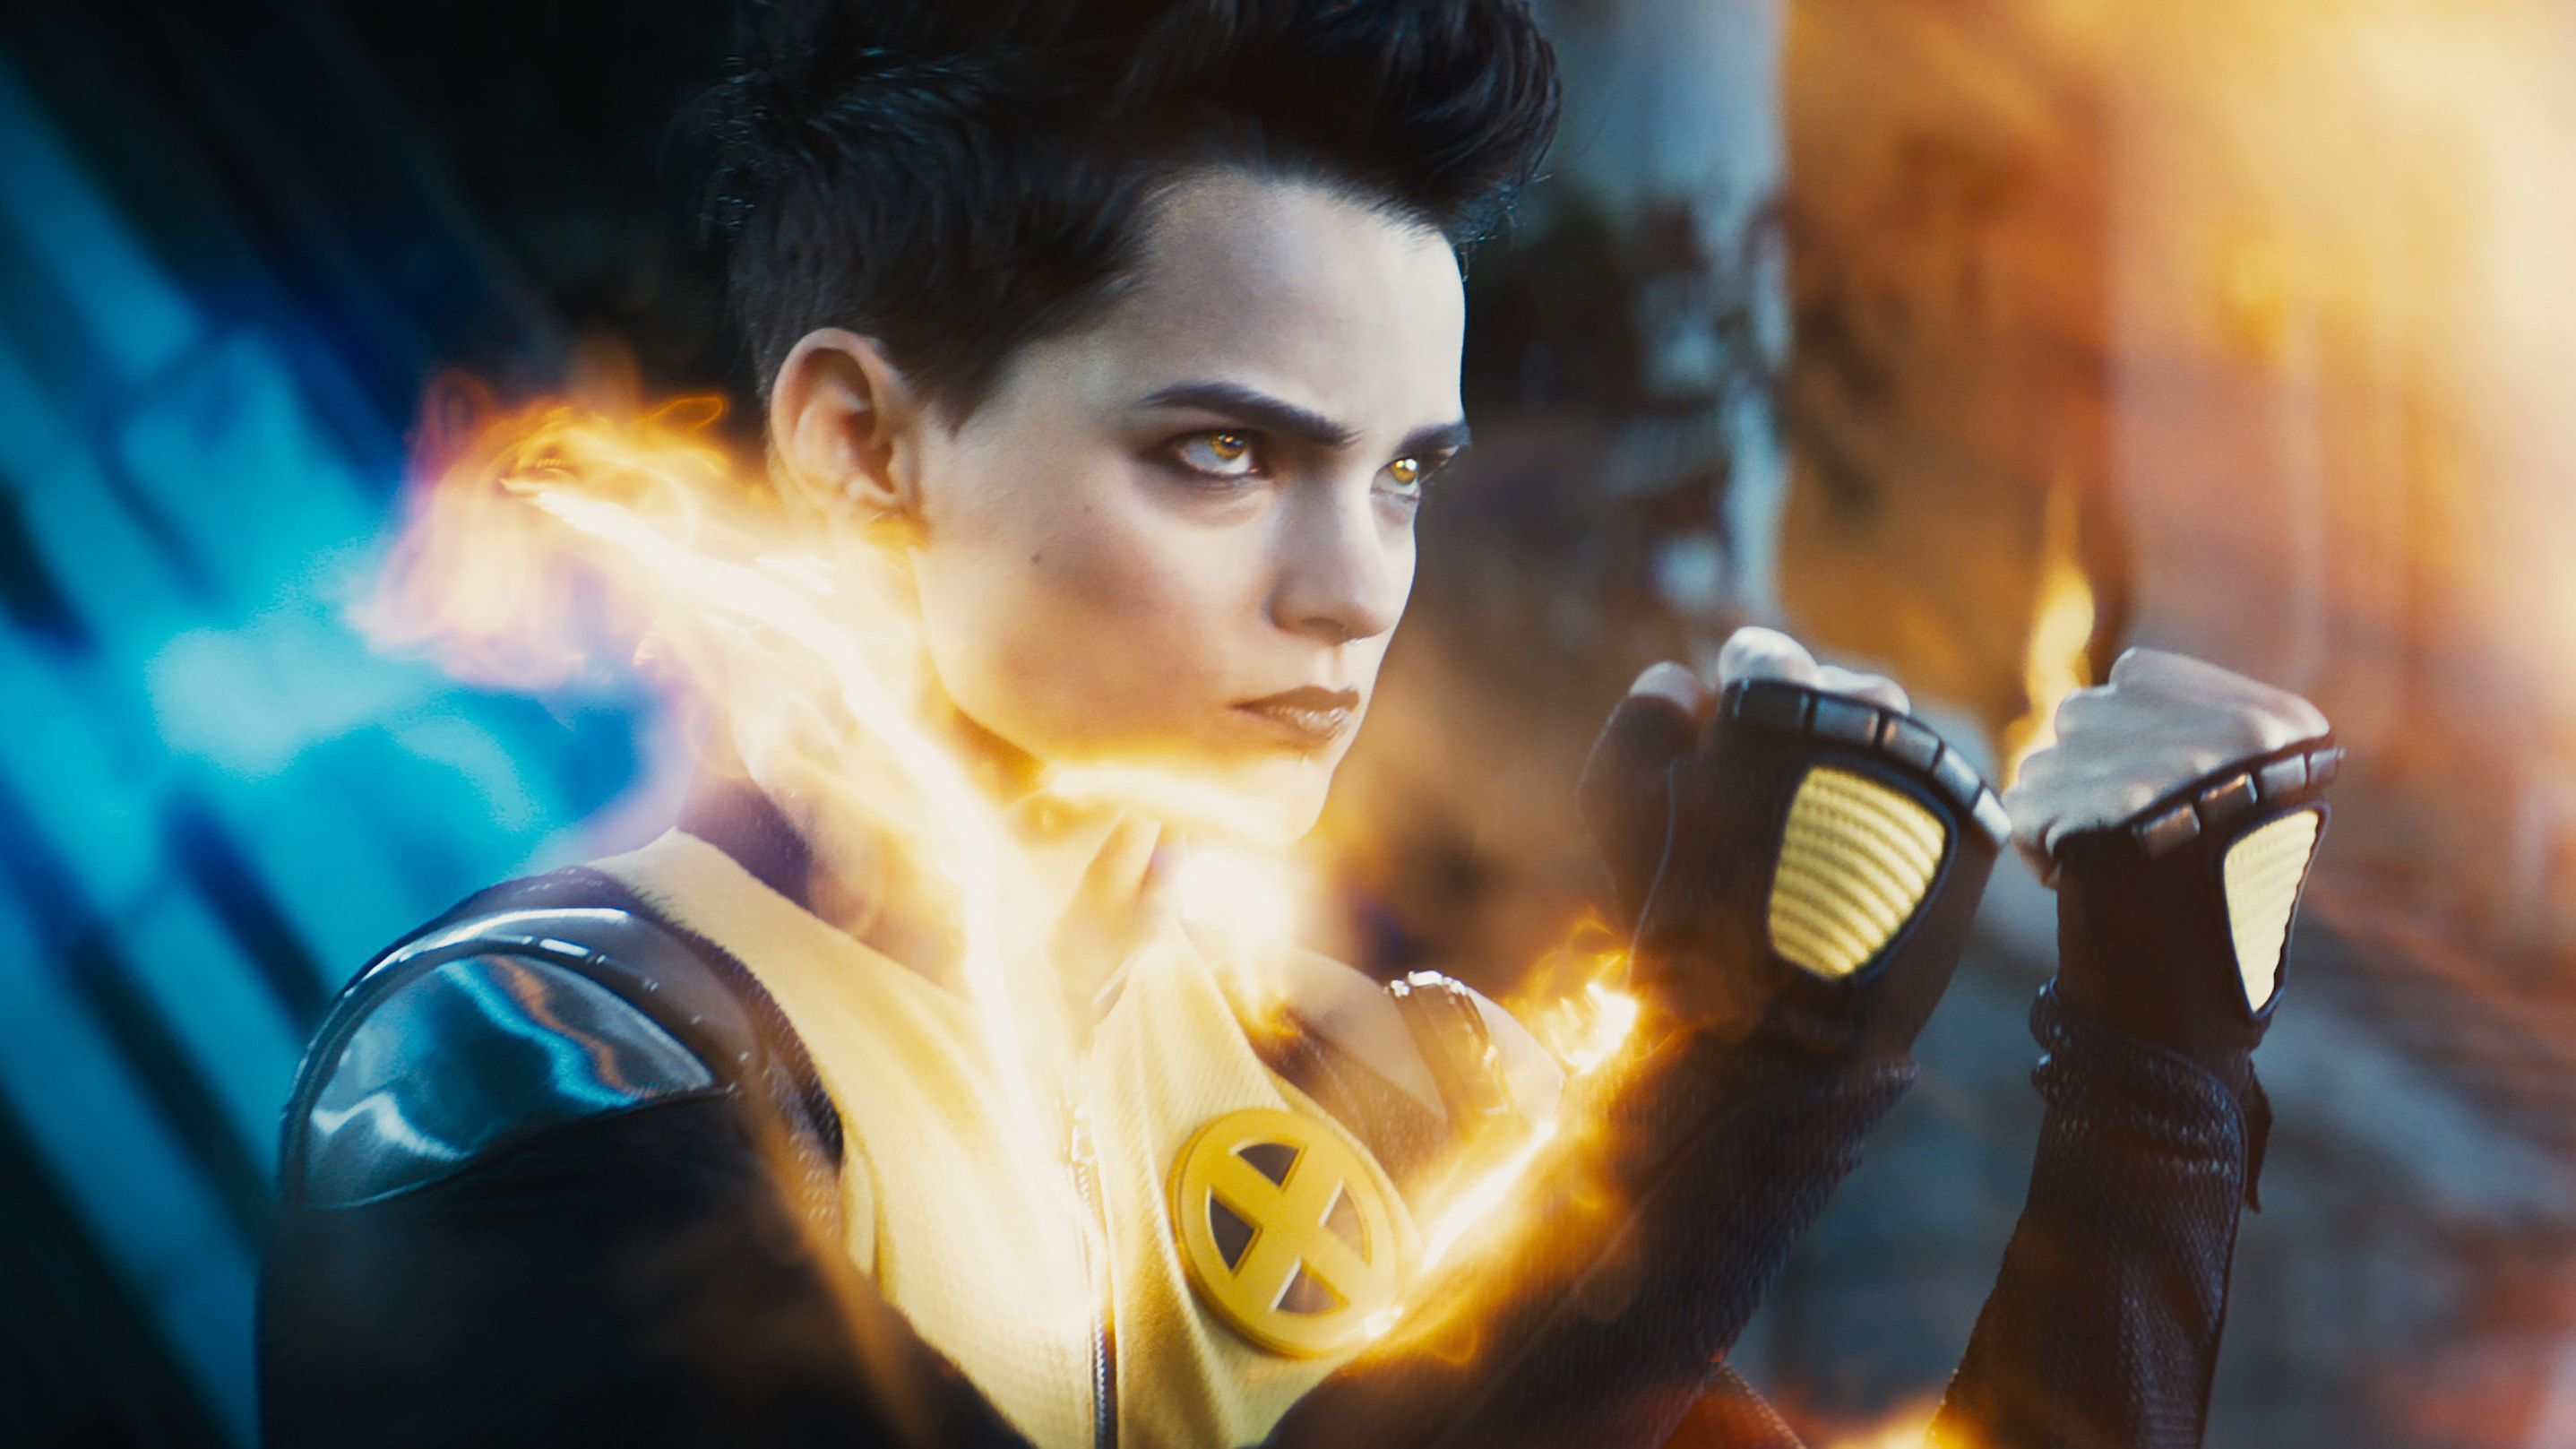 2875x1617 Negasonic Teenage Warhead Deadpool 2, HD Movies, 4k Wallpapers ...